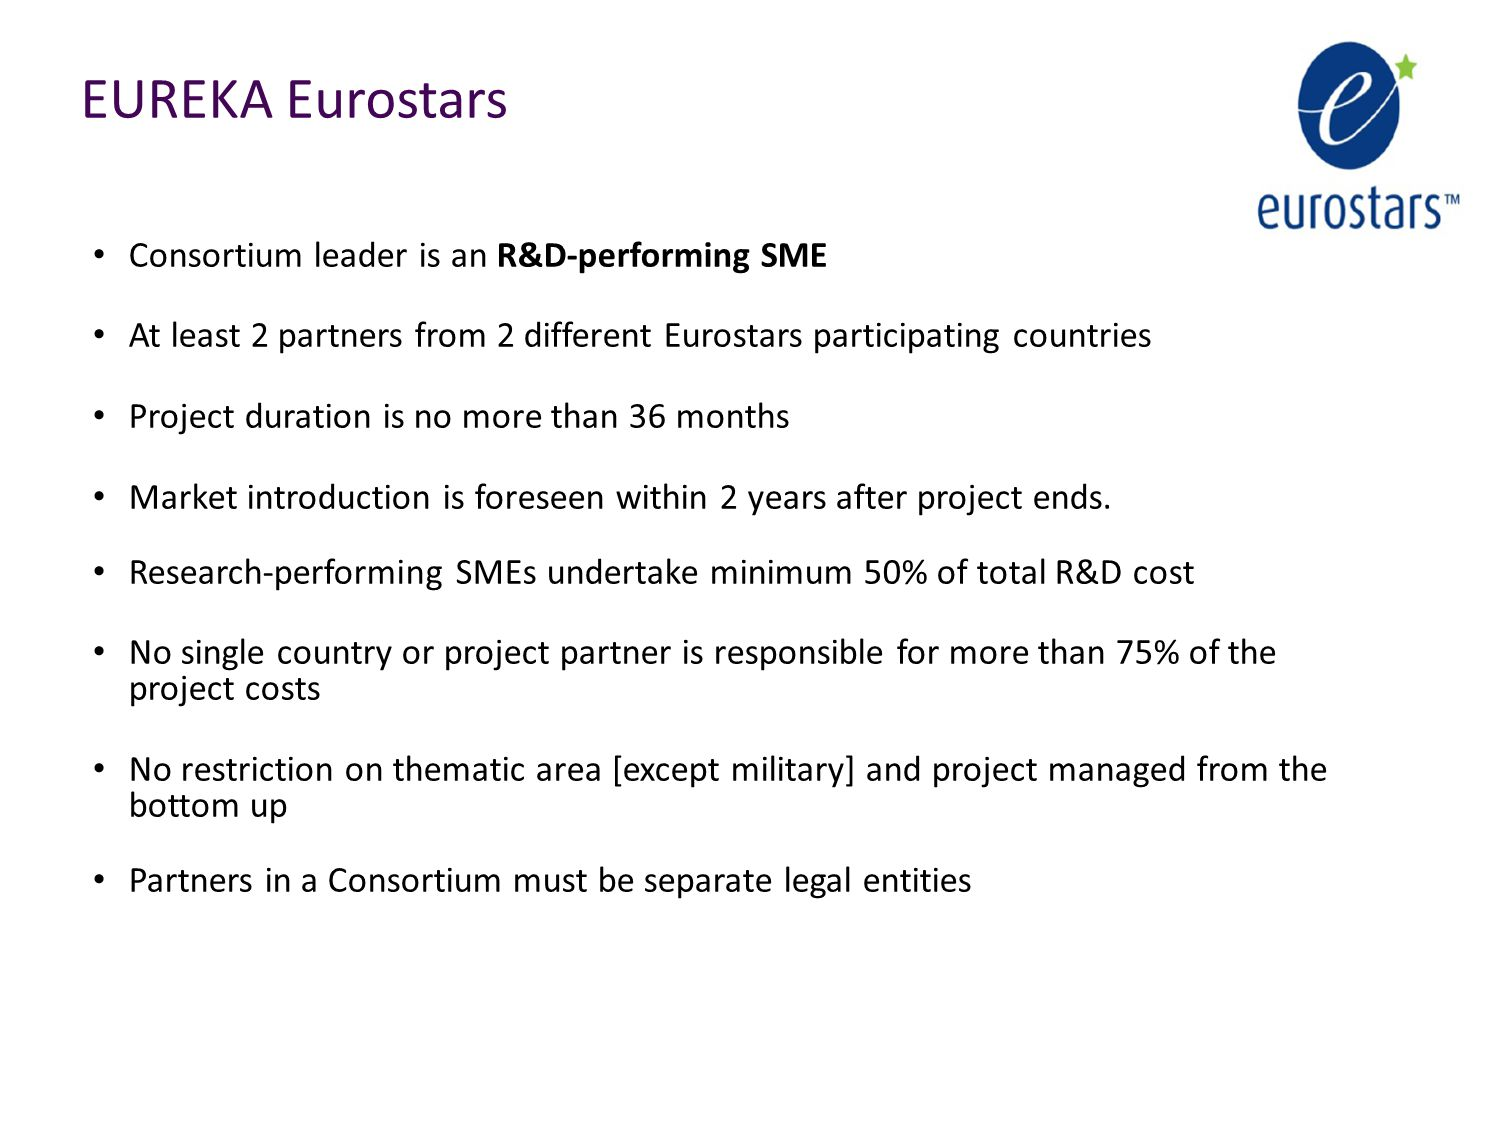 EUREKA Eurostars Consortium leader is an R&D-performing SME